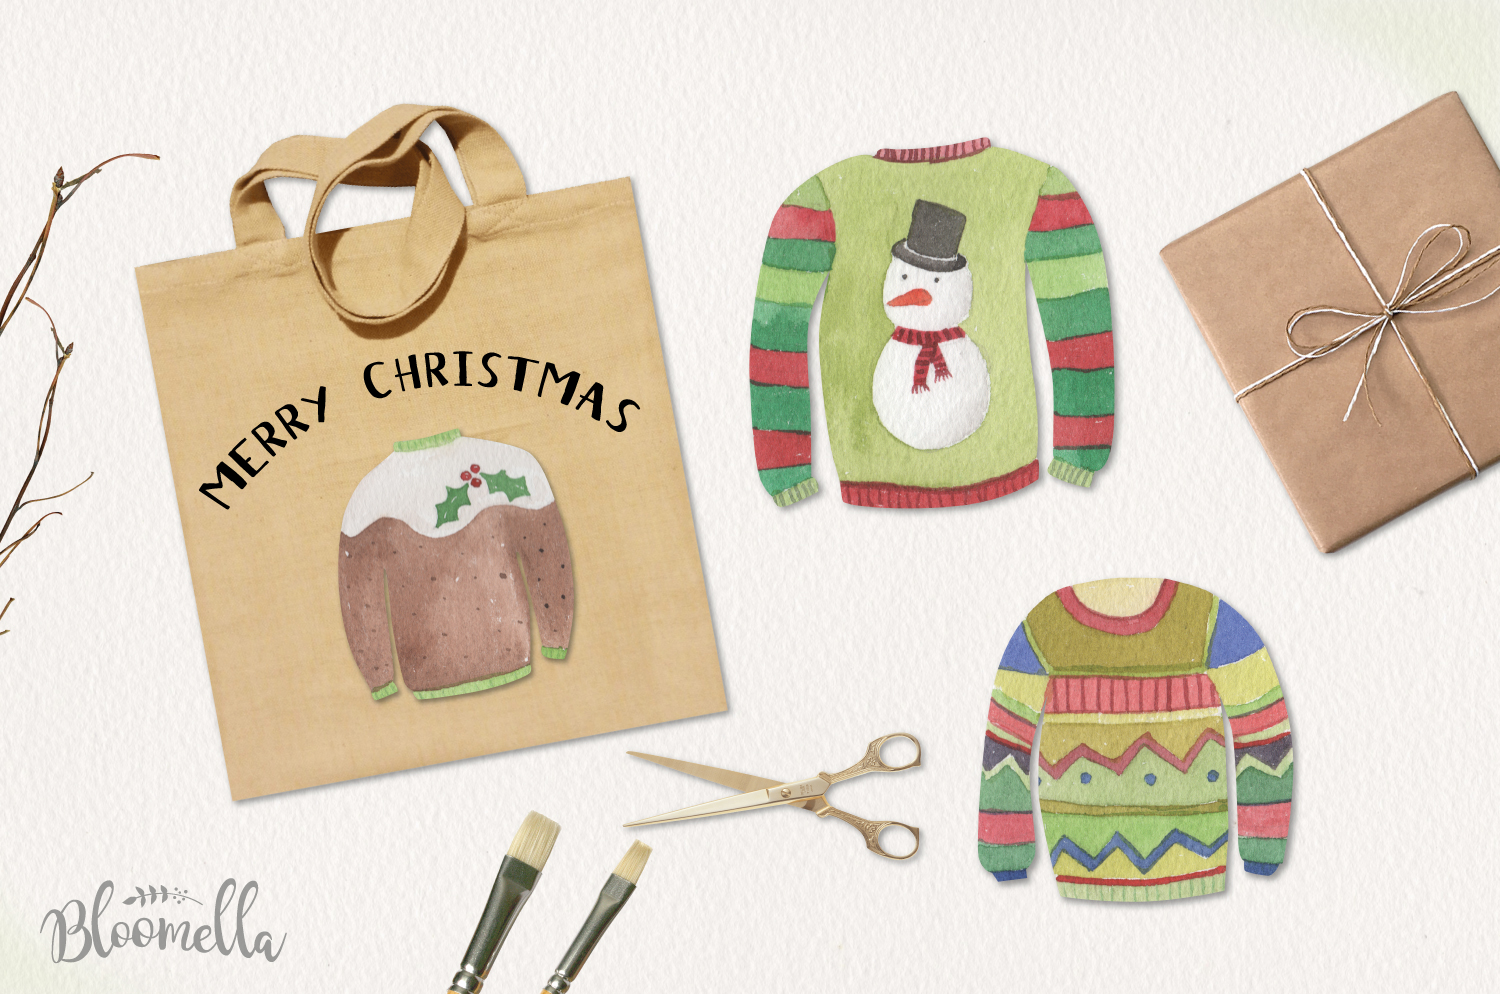 Festive Jumpers Watercolor Elements Christmas Sweaters Xmas example image 3